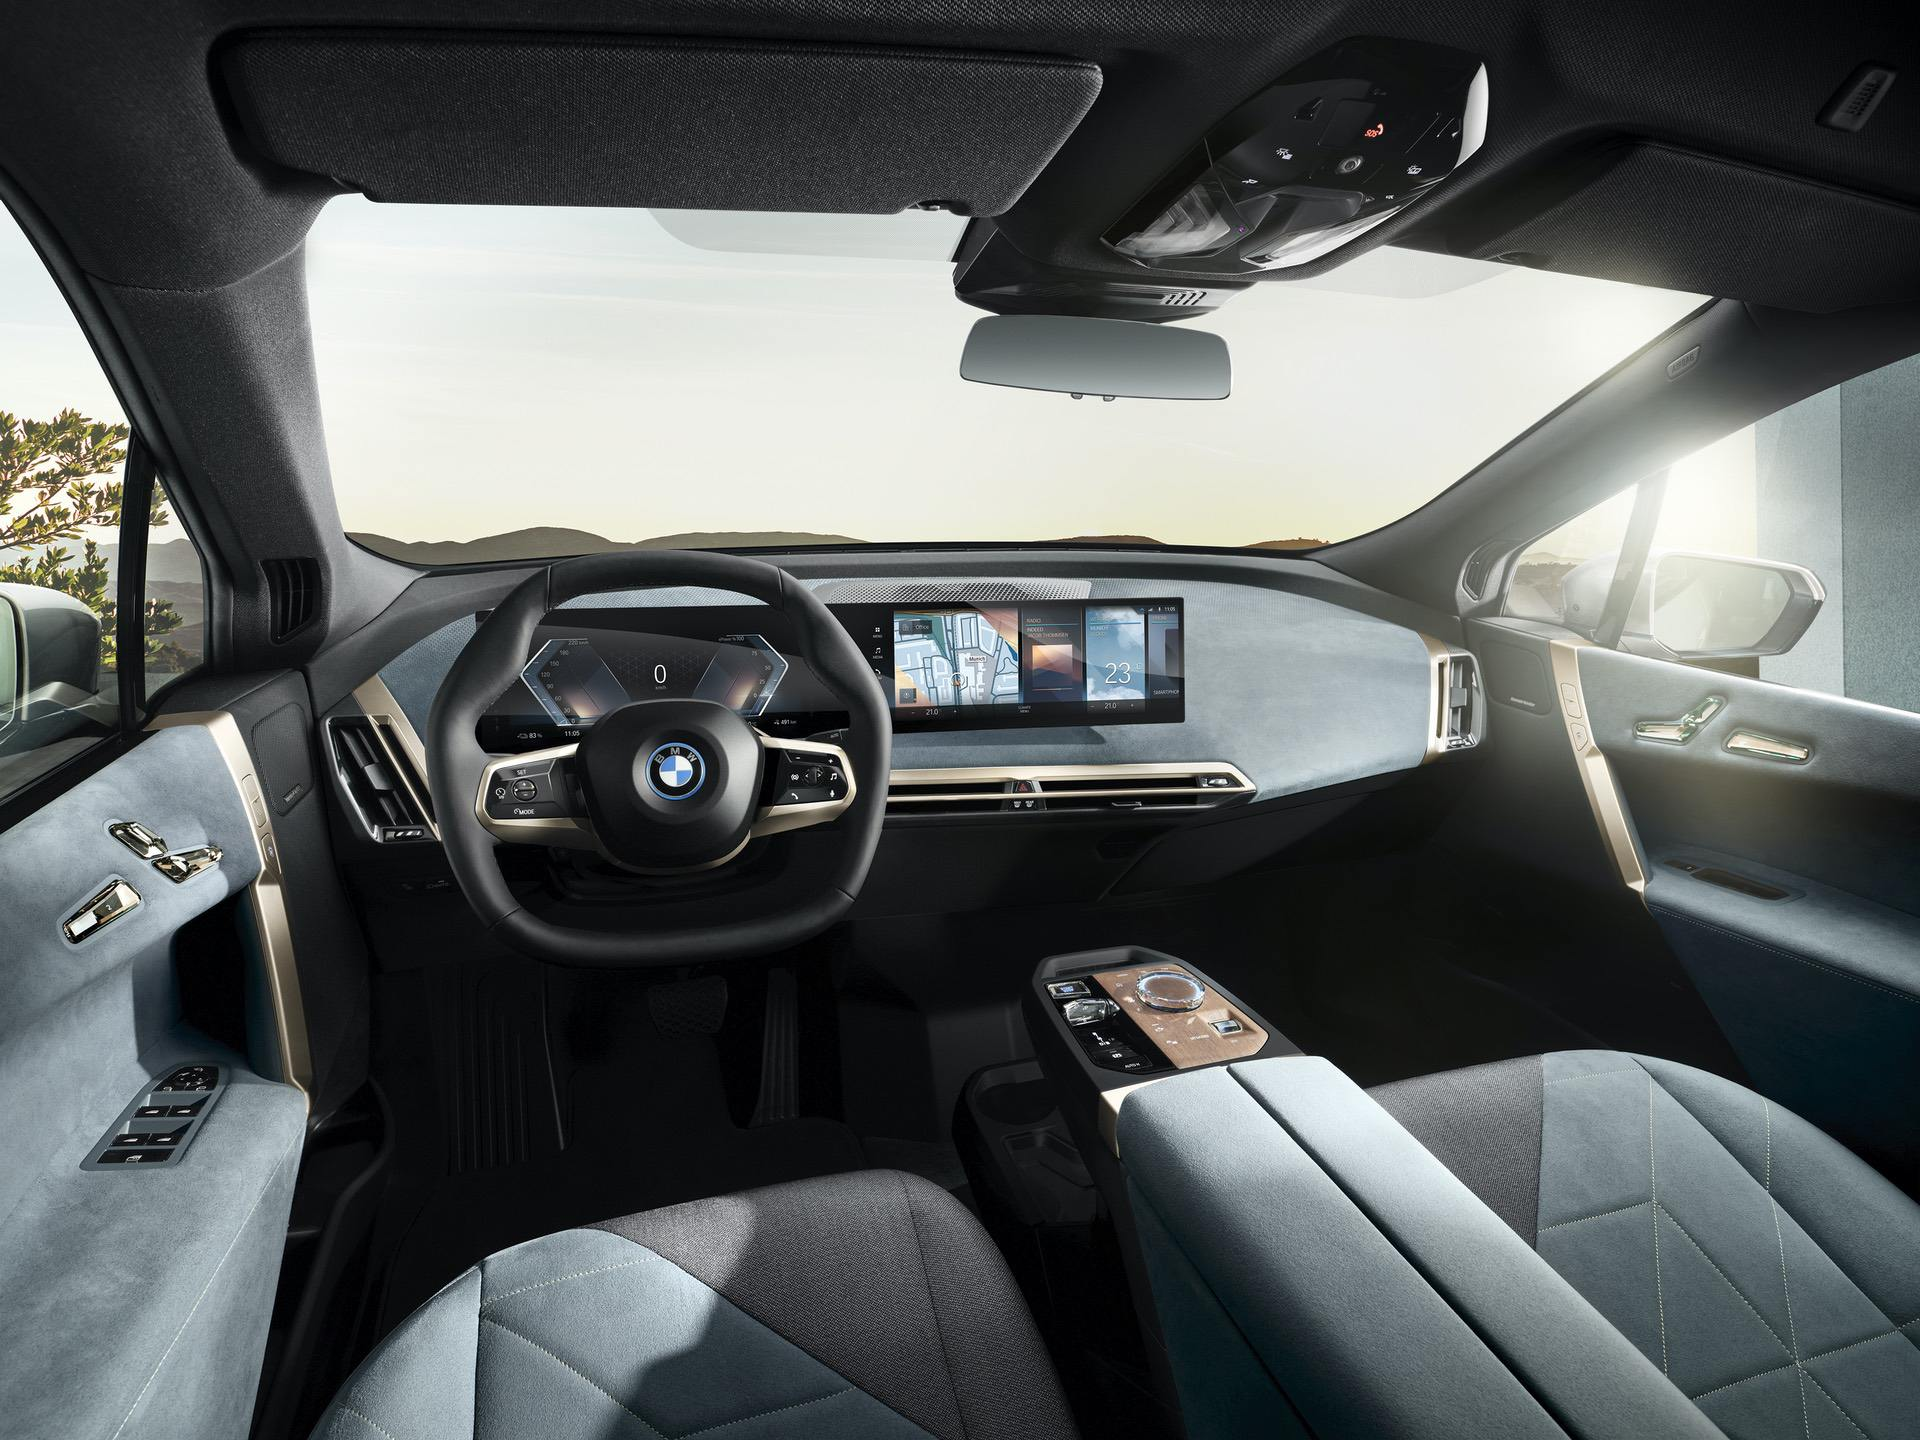 2022-bmw-ix-interior-12.jpg